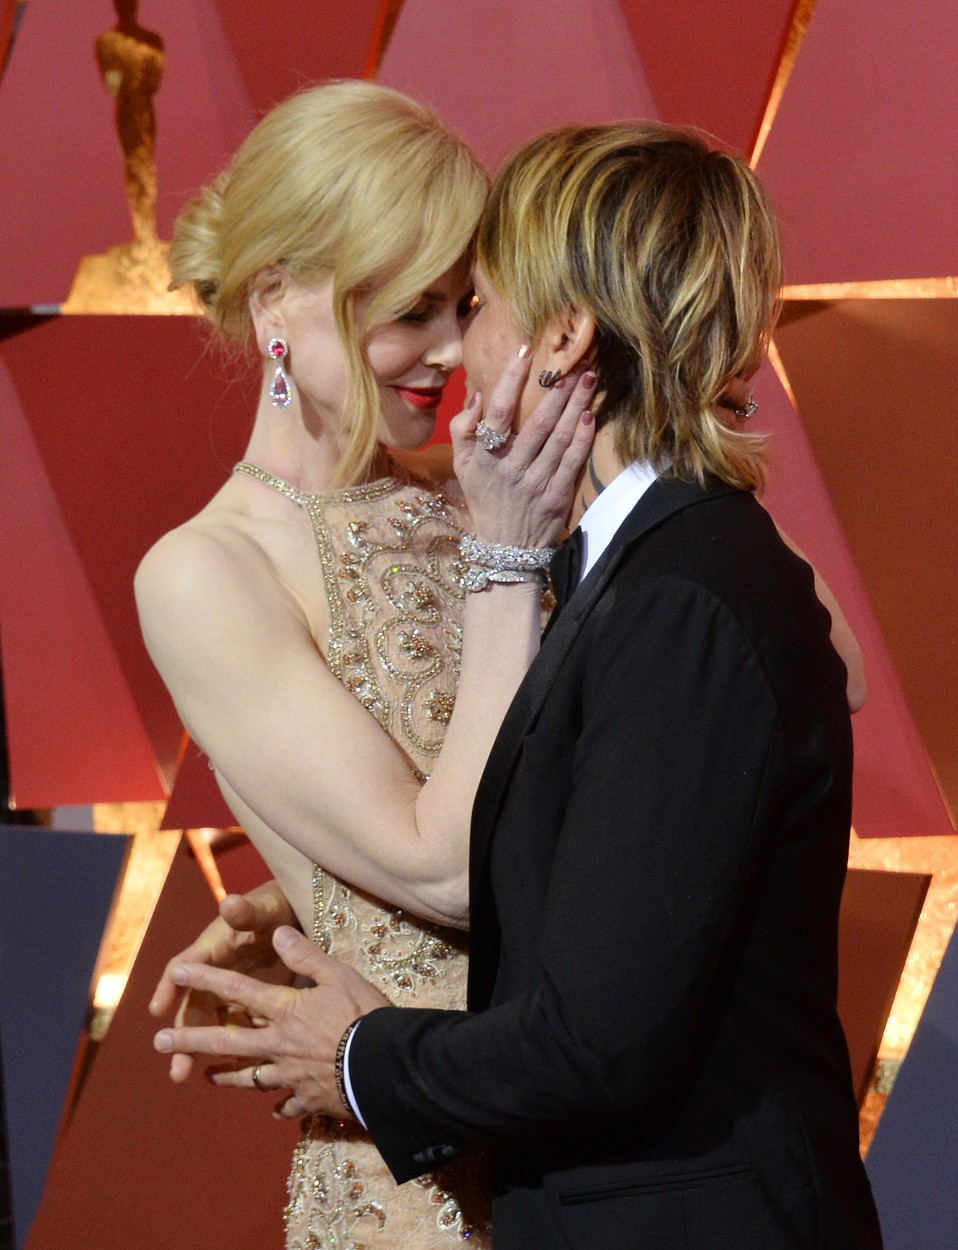 Actors Nicole Kidman and Keith Urban arrive on the red carpet for the 89th annual Academy Awards at the Dolby Theatre in the Hollywood section of Los Angeles on February 26, 2017. Photo by /UPI, Image: 322544579, License: Rights-managed, Restrictions: , Model Release: no, Credit line: Profimedia, UPI